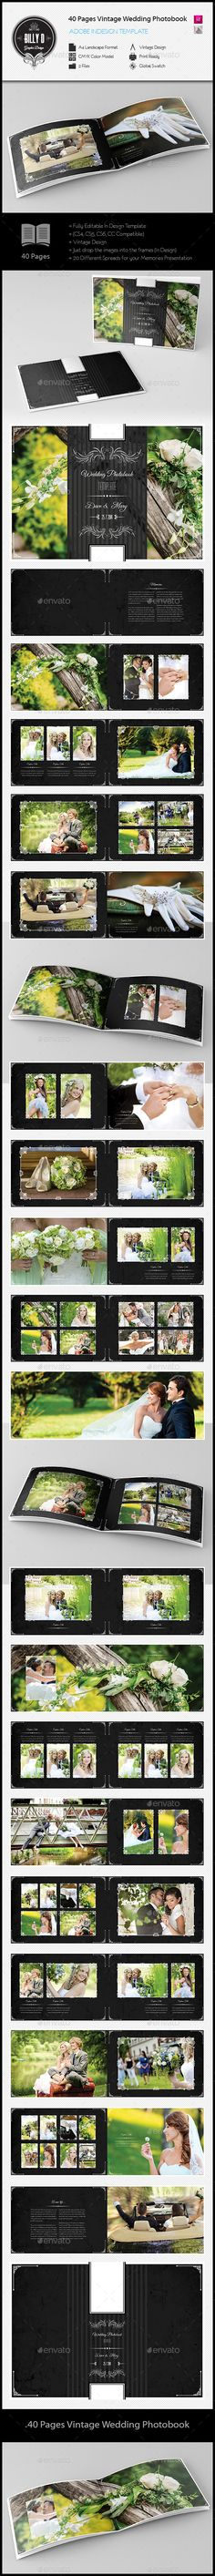 Wedding Al Design Photo Als Photos Graphic Templates Print Printing Book